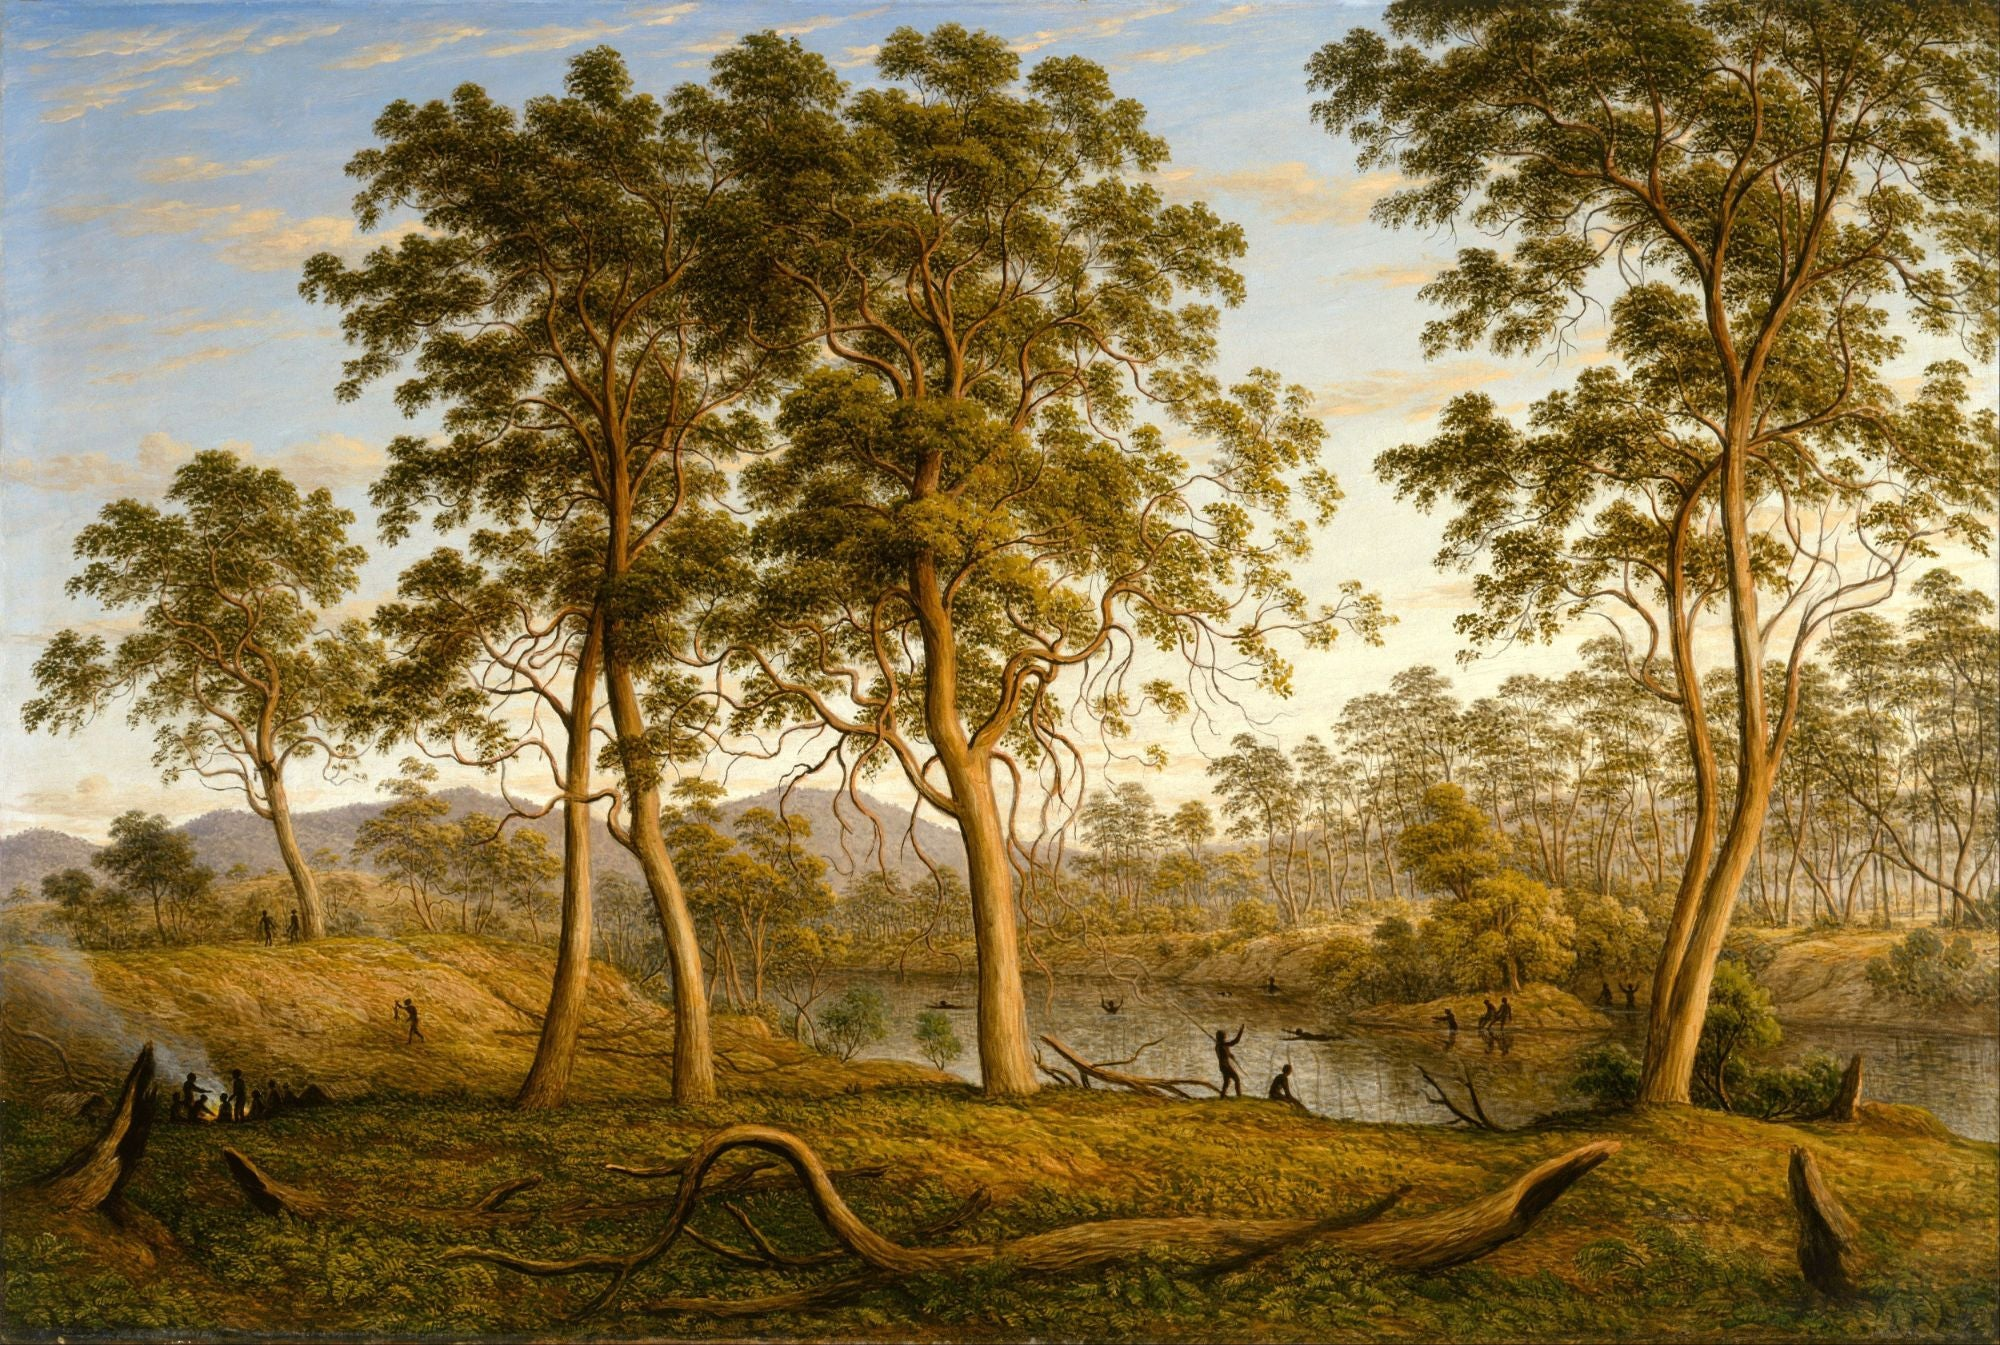 John Glover | Buy Posters, Frames, Canvas, Digital Art & Large Size Prints Of The Famous Old Master's Artworks